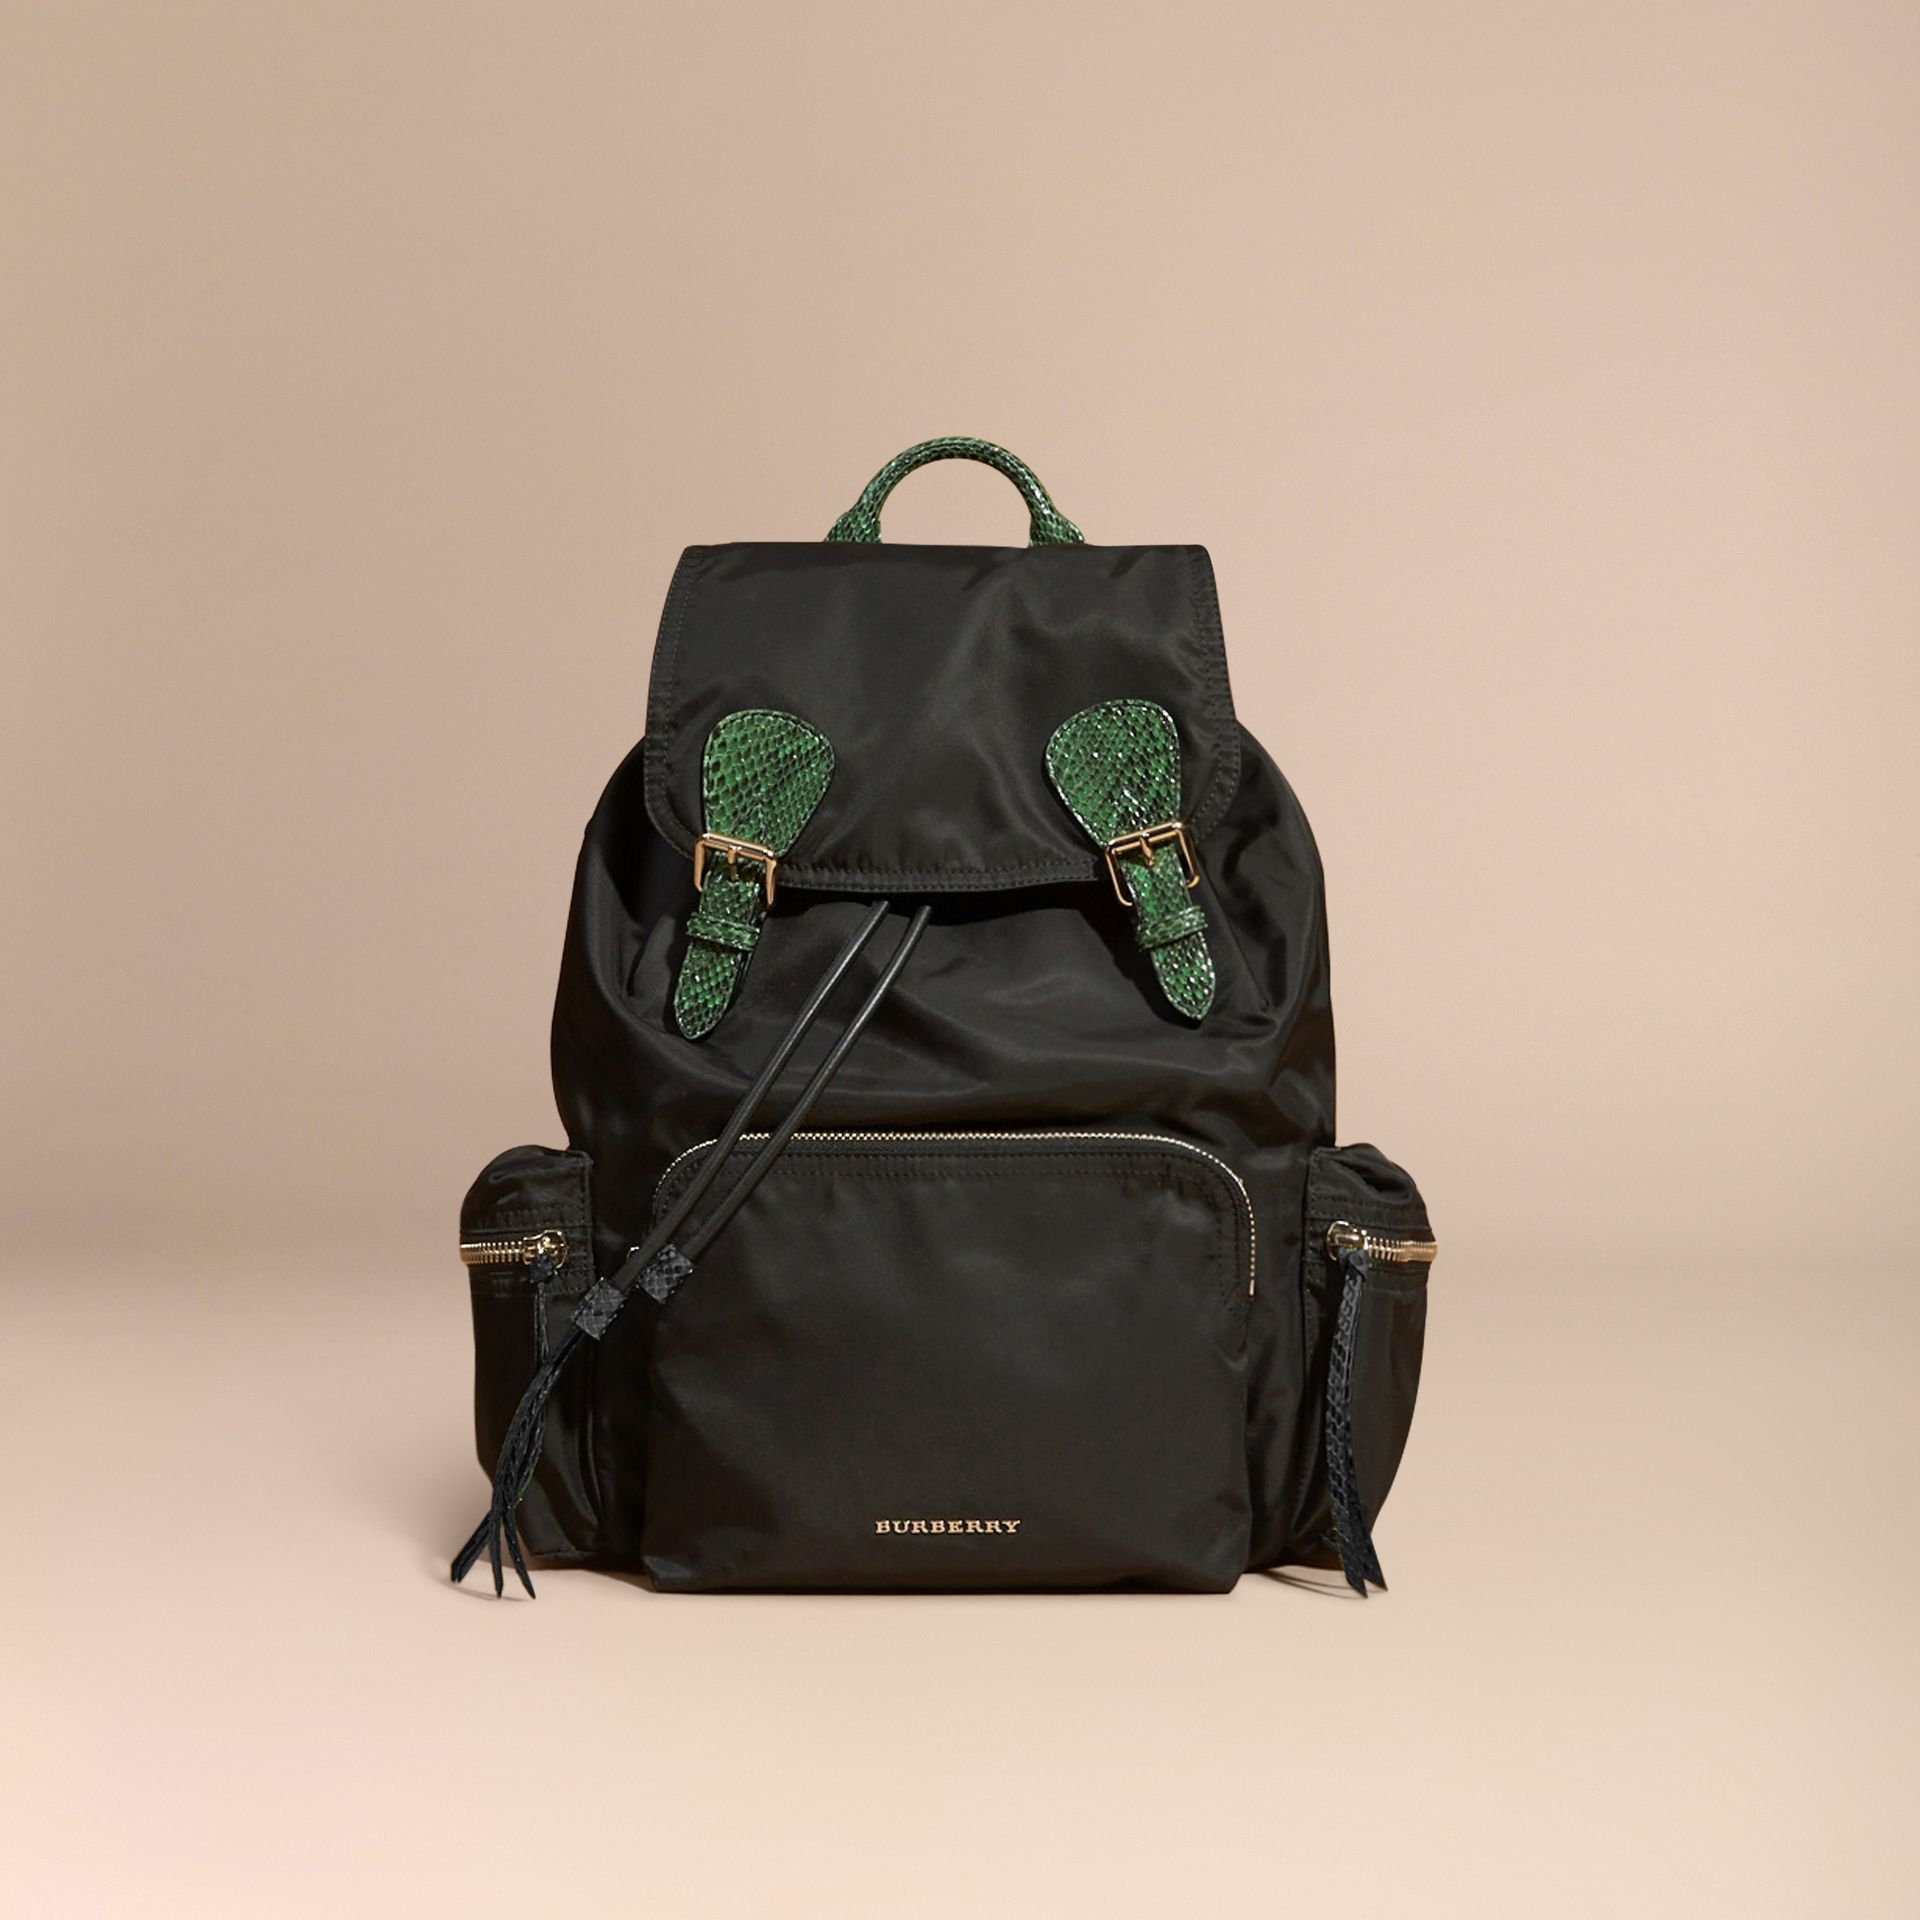 Black/bright green The Large Rucksack in Technical Nylon and Snakeskin Black/bright Green - gallery image 9